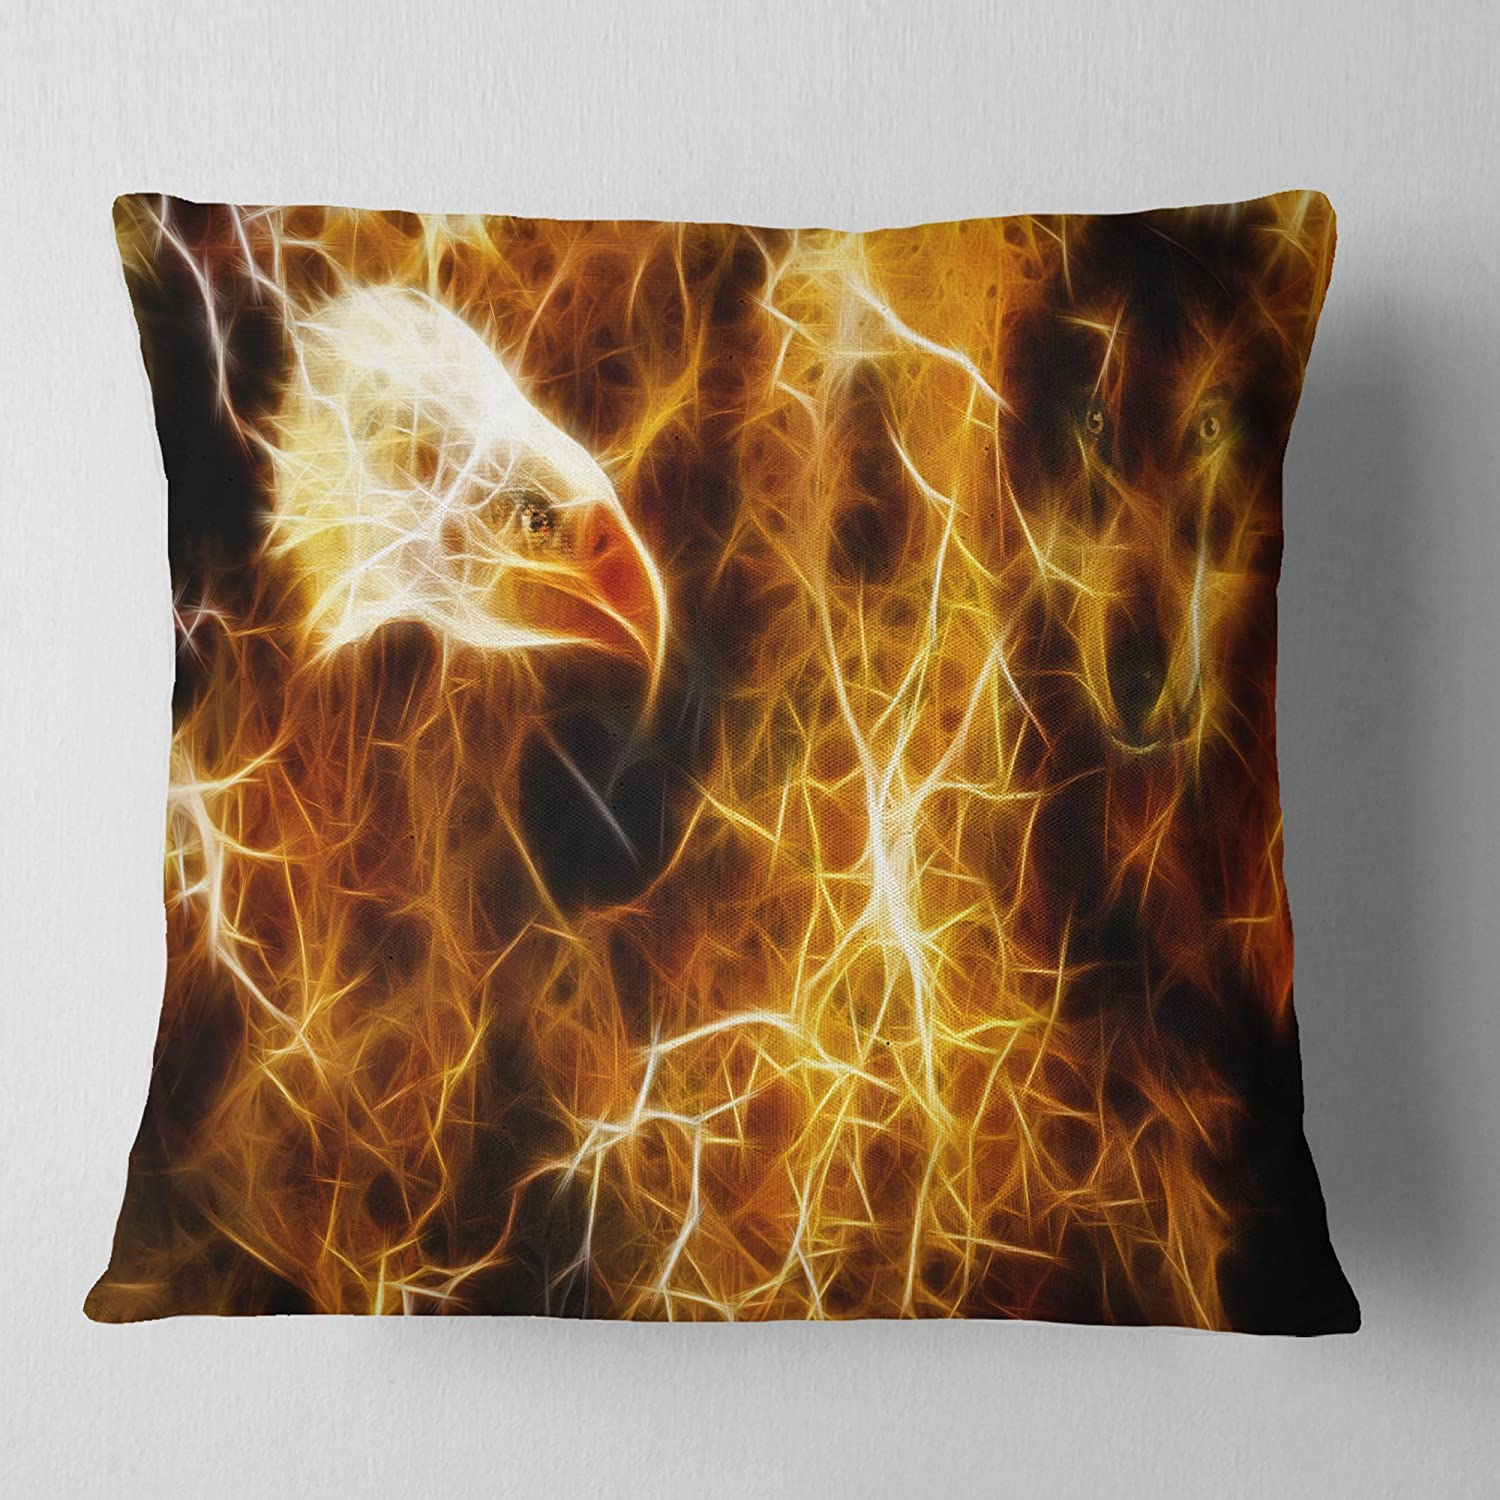 Designart CU13299-26-26 Wolf and Eagle Collage' Abstract Cushion Cover for Living Room, Sofa Throw Pillow 26 in. x 26 in. in, Insert Printed On Both Side